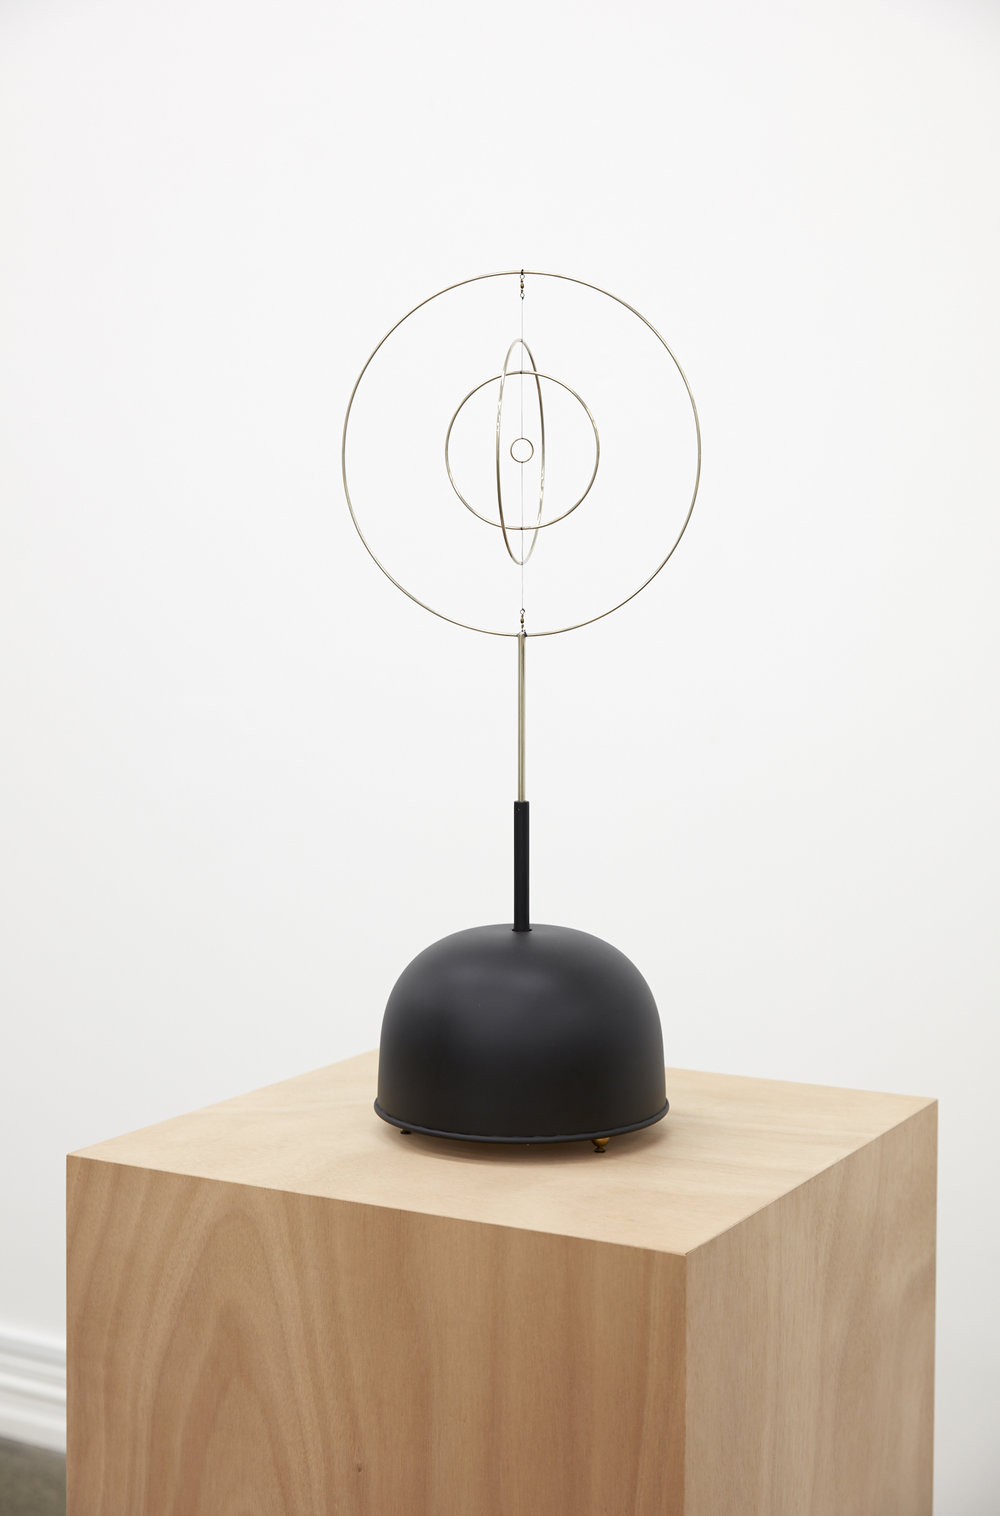 Len Lye,  Roundhead,  1961 (authorized reconstruction), steel, nylon, gold plated copper with motor and altered music box, 675 x 255 mm disameter.